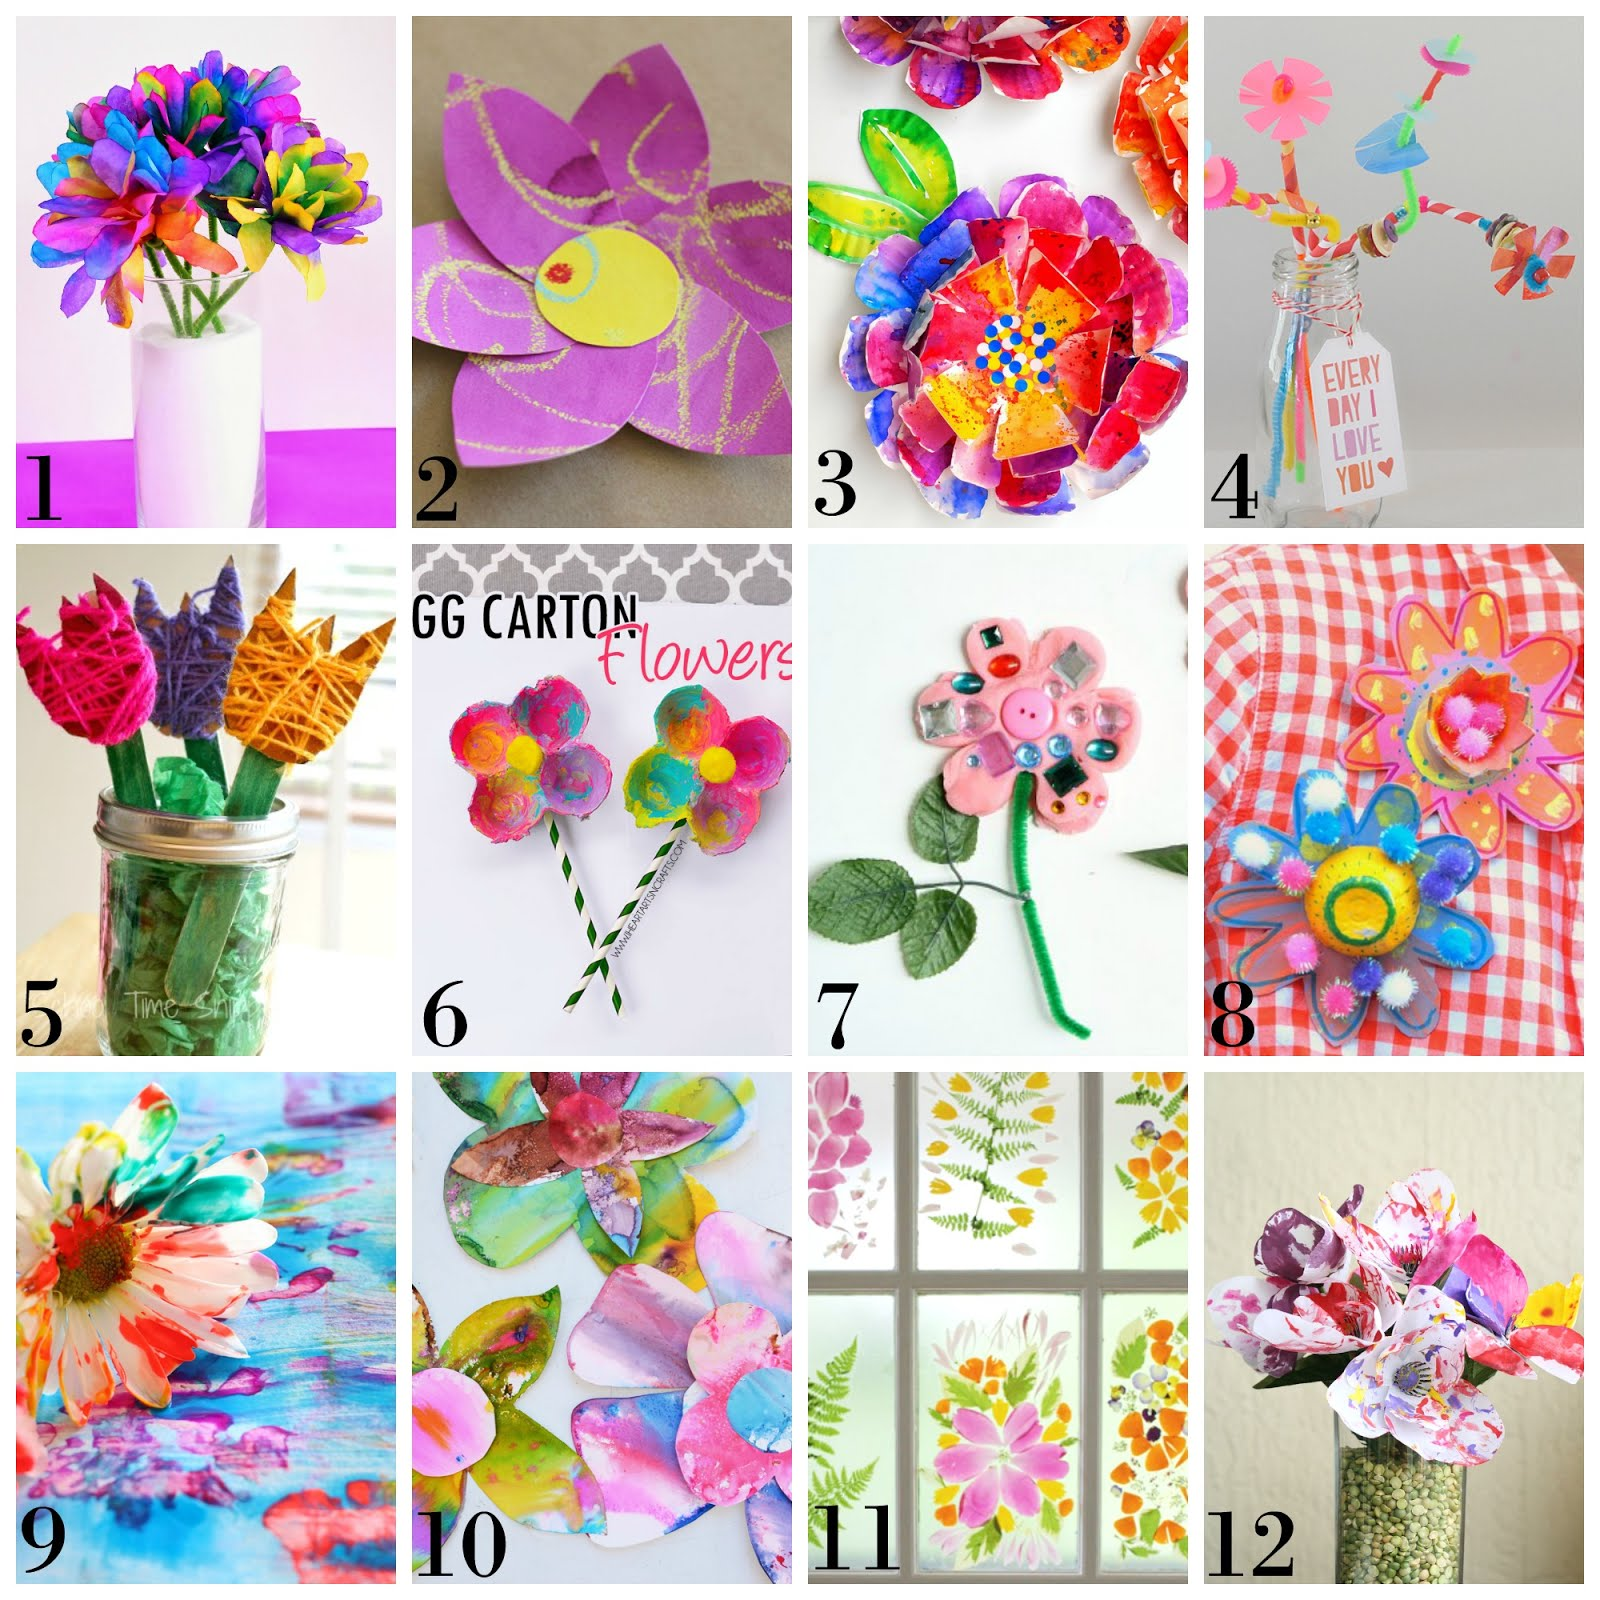 12 Beautiful Spring Flower Process Art Ideas For Kids From Fun At Home With